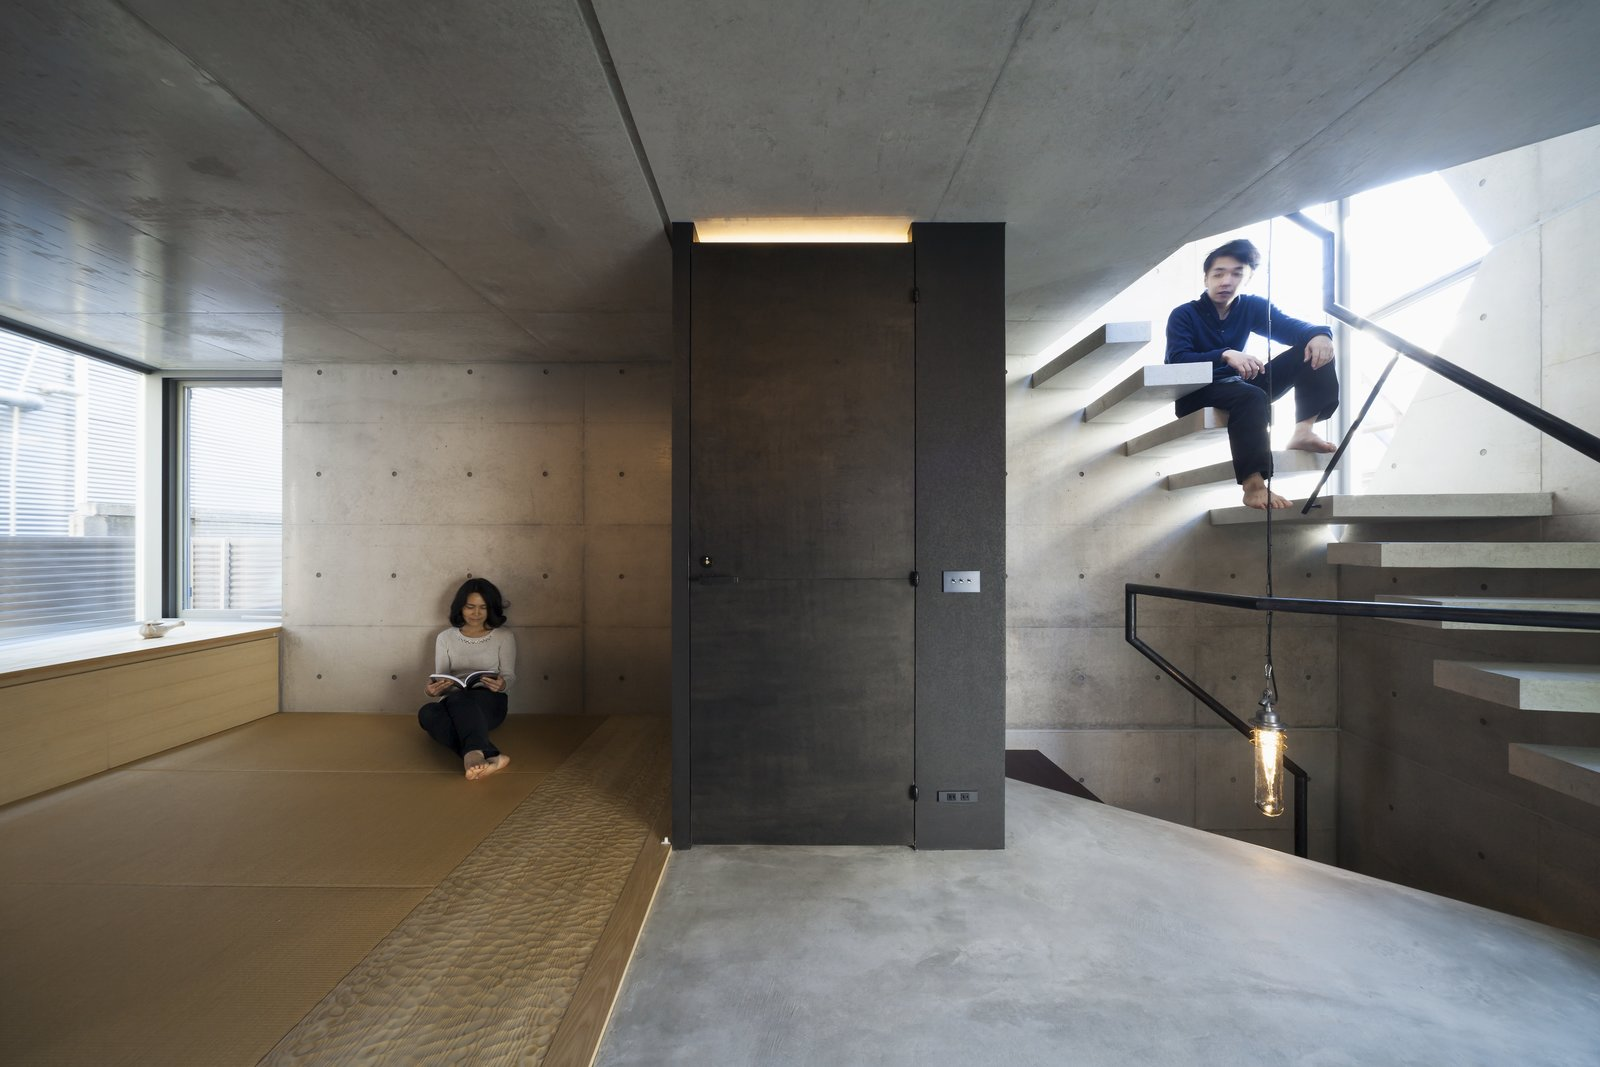 Office, Study Room Type, Concrete Floor, and Storage  Photo 14 of 16 in A Concrete Micro-House in Japan Works All the Angles